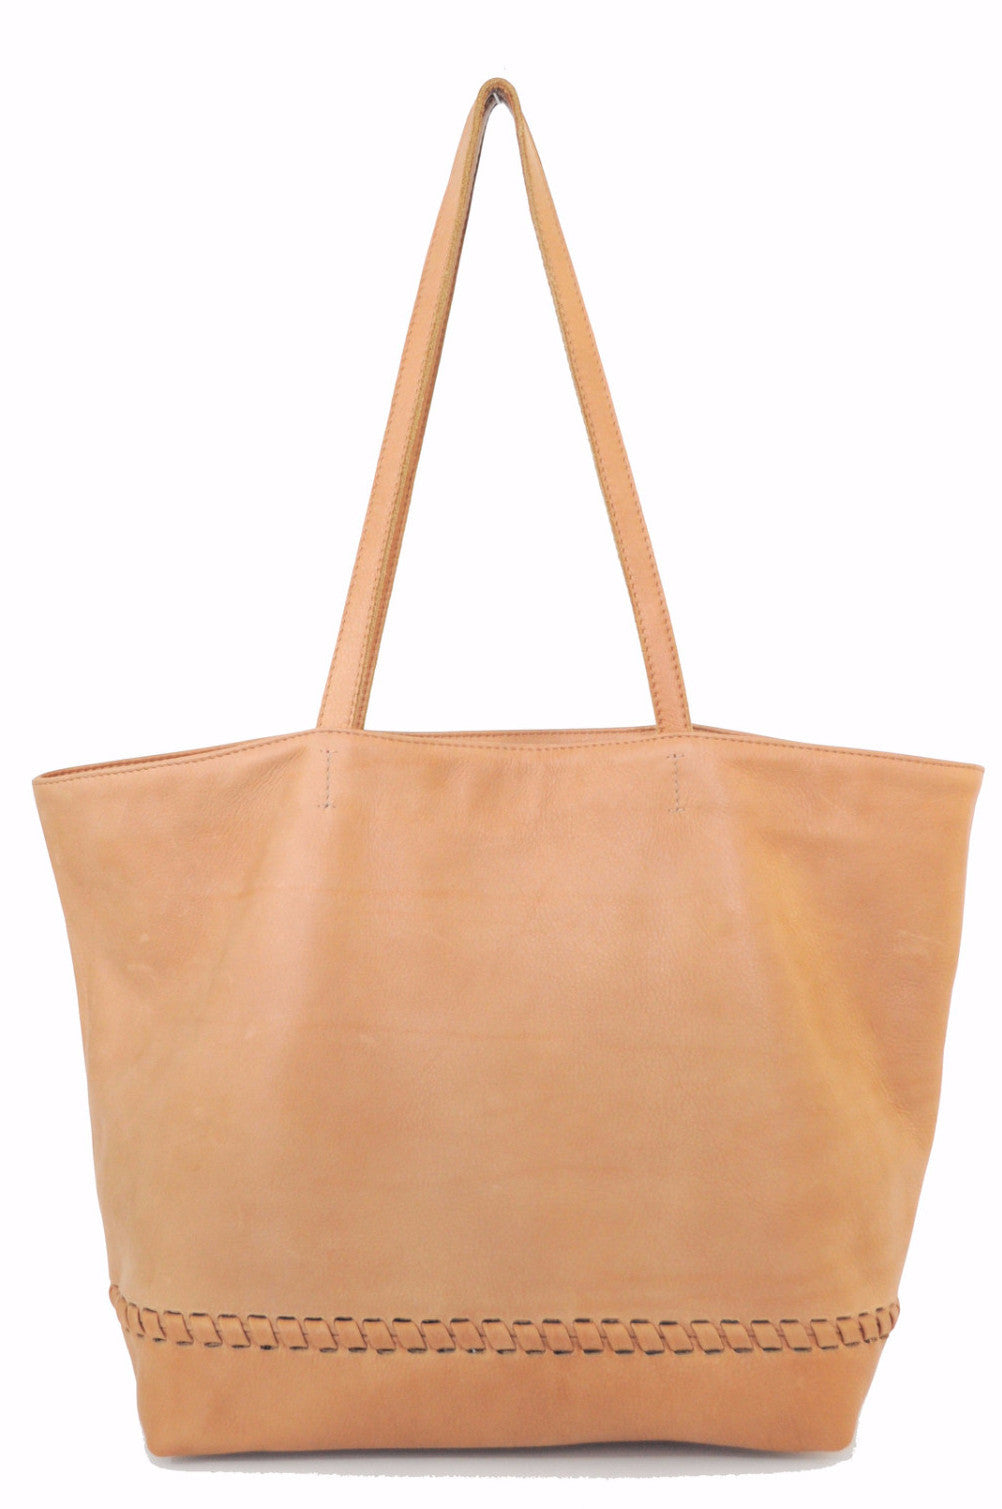 Simple Braided Tote Tan - ShopPositiveElements.com